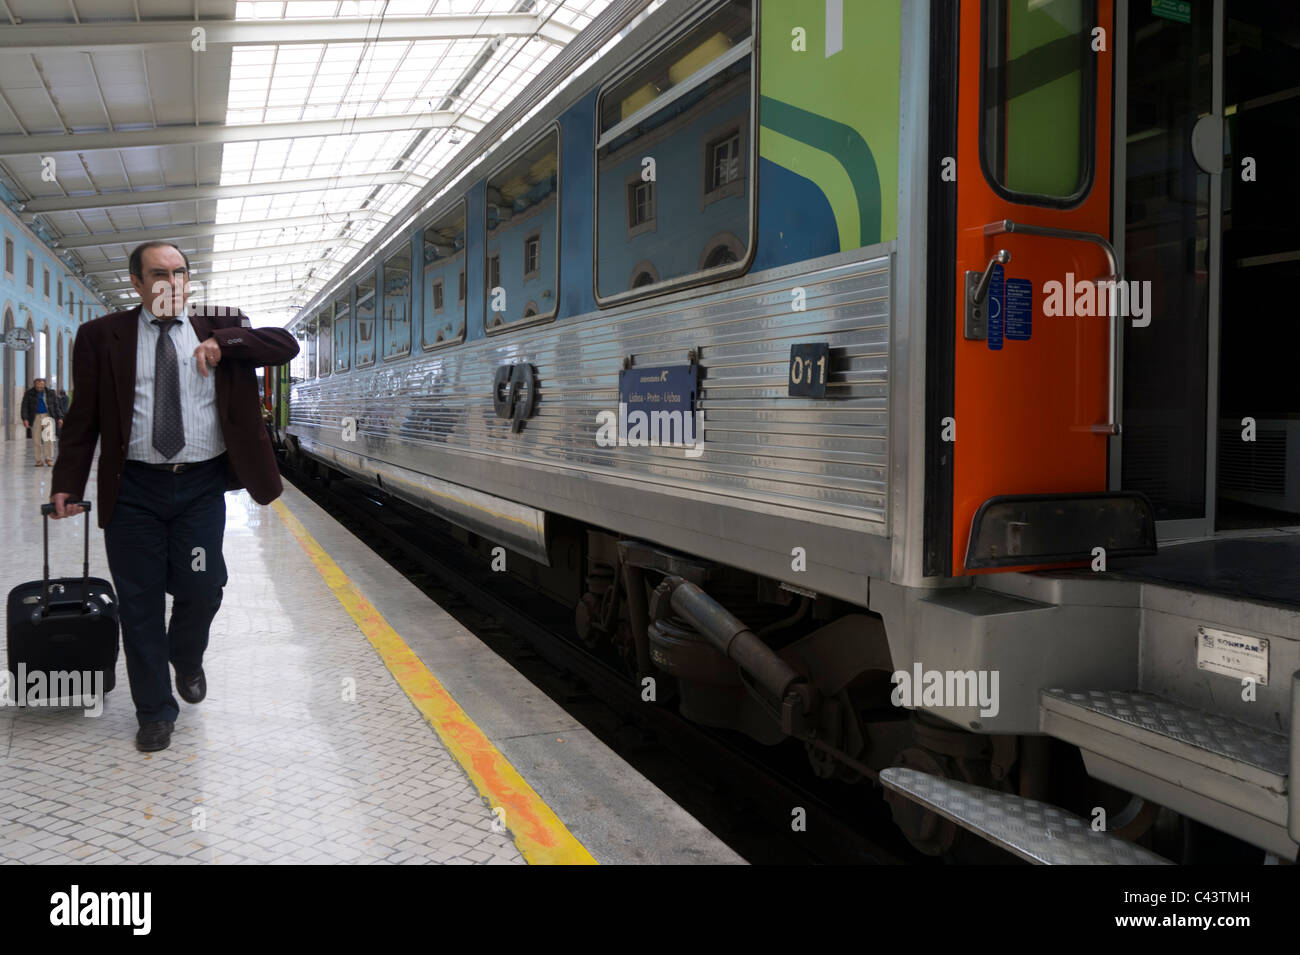 Passenger with suitcase next to an intercity train in Santa Apolónia railway station in Lisbon, Portugal, Europe - Stock Image